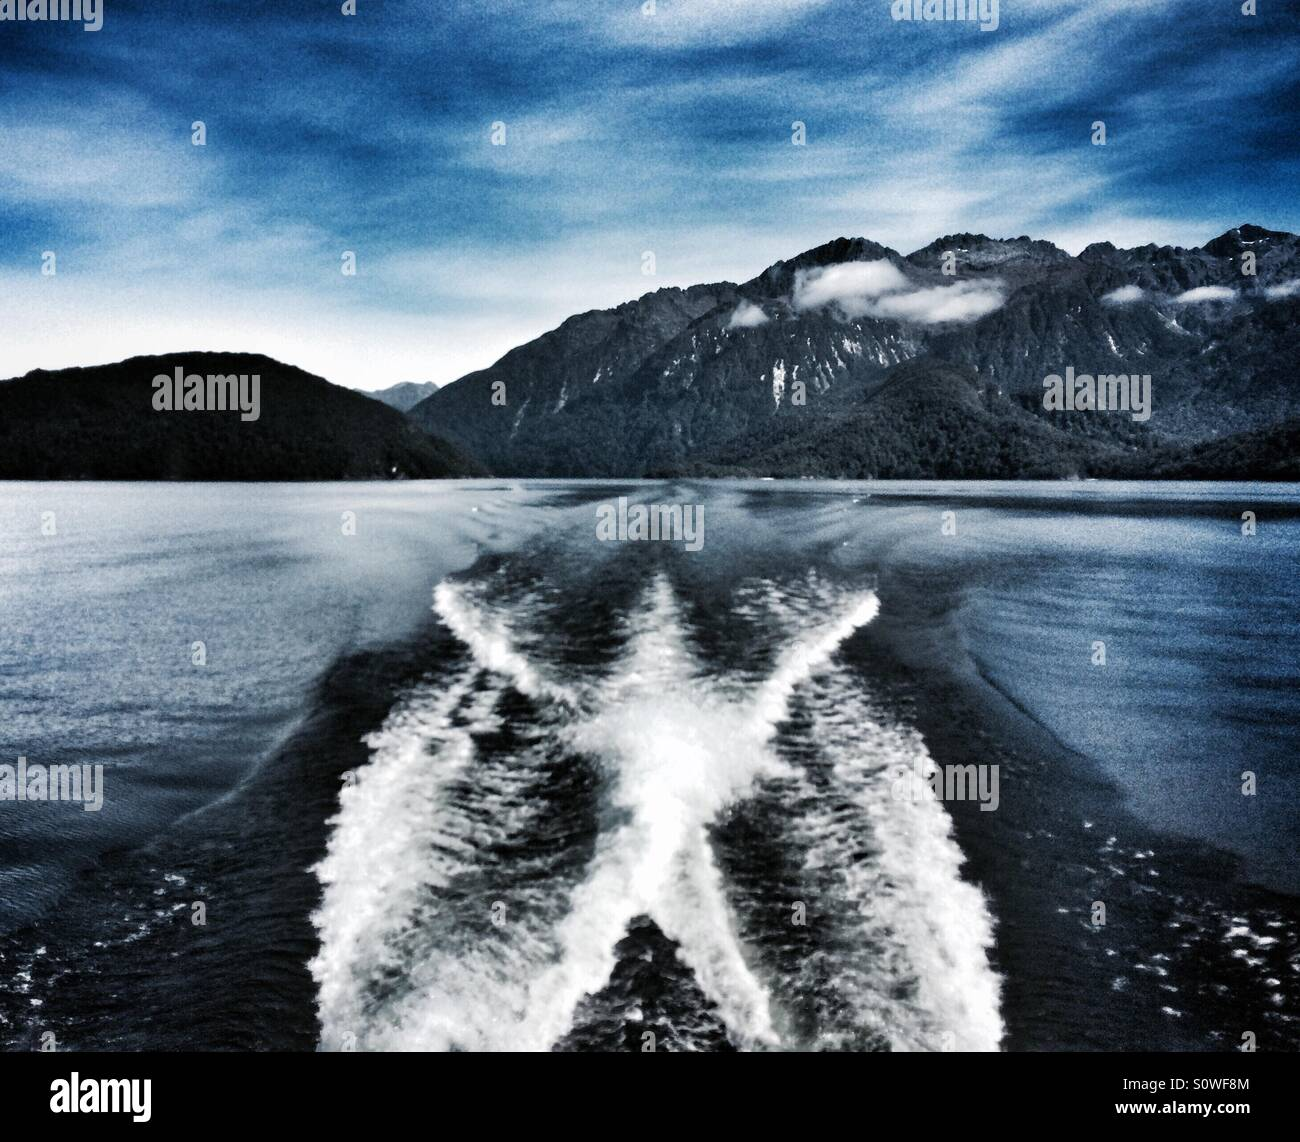 Trails behind a boat in Lake Manapouri, near Doubtful Sound, South Island, New Zealand Stock Photo